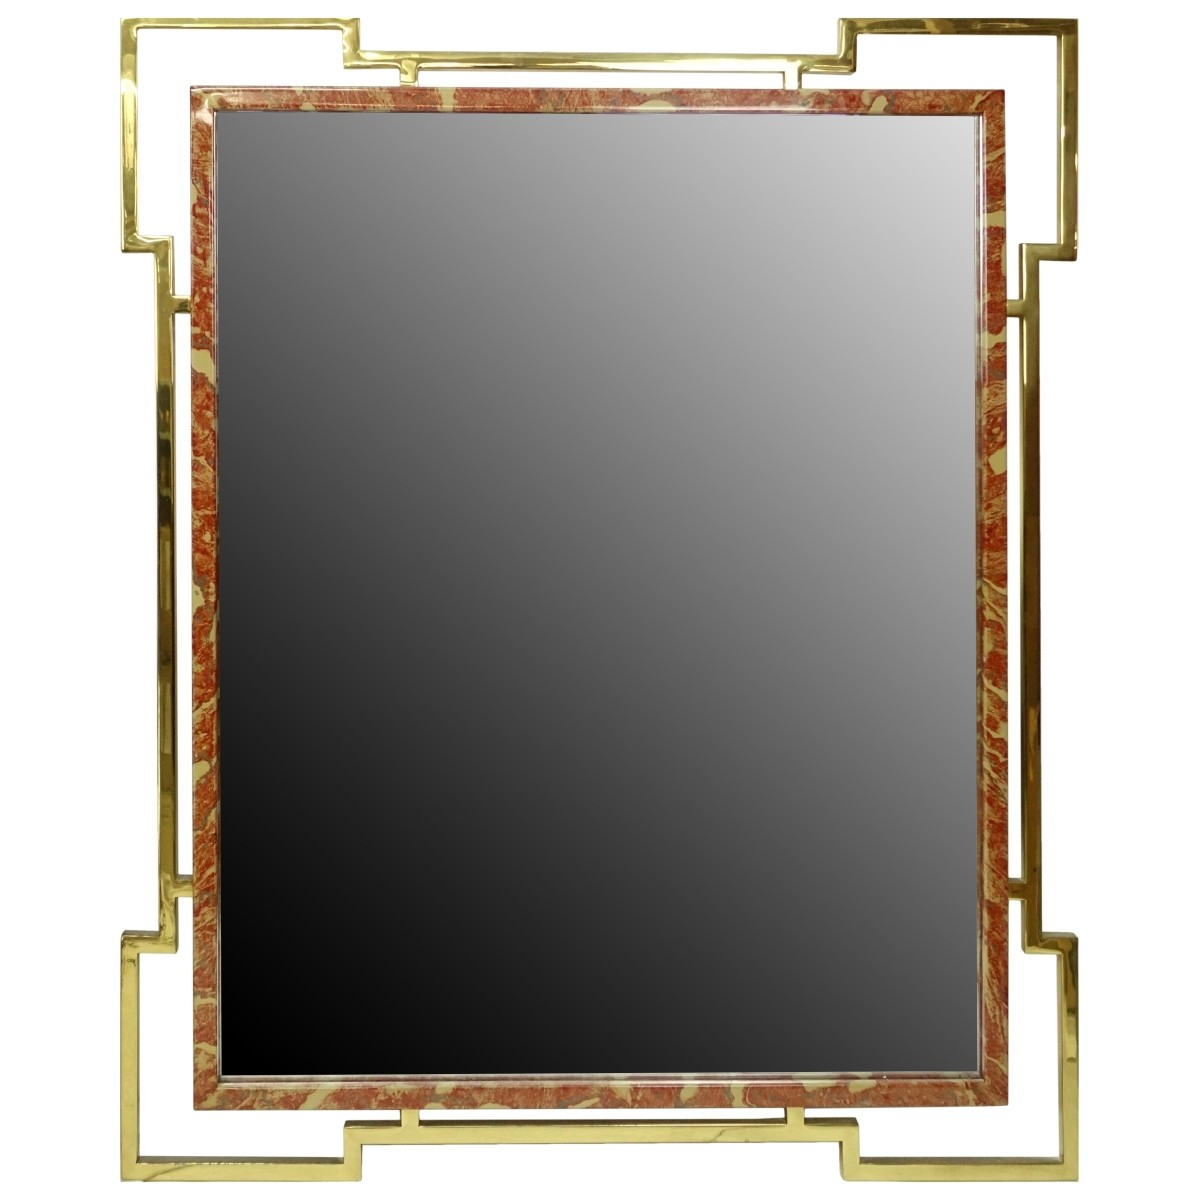 Mid 20th Century Brass and Faux Marble Mirror